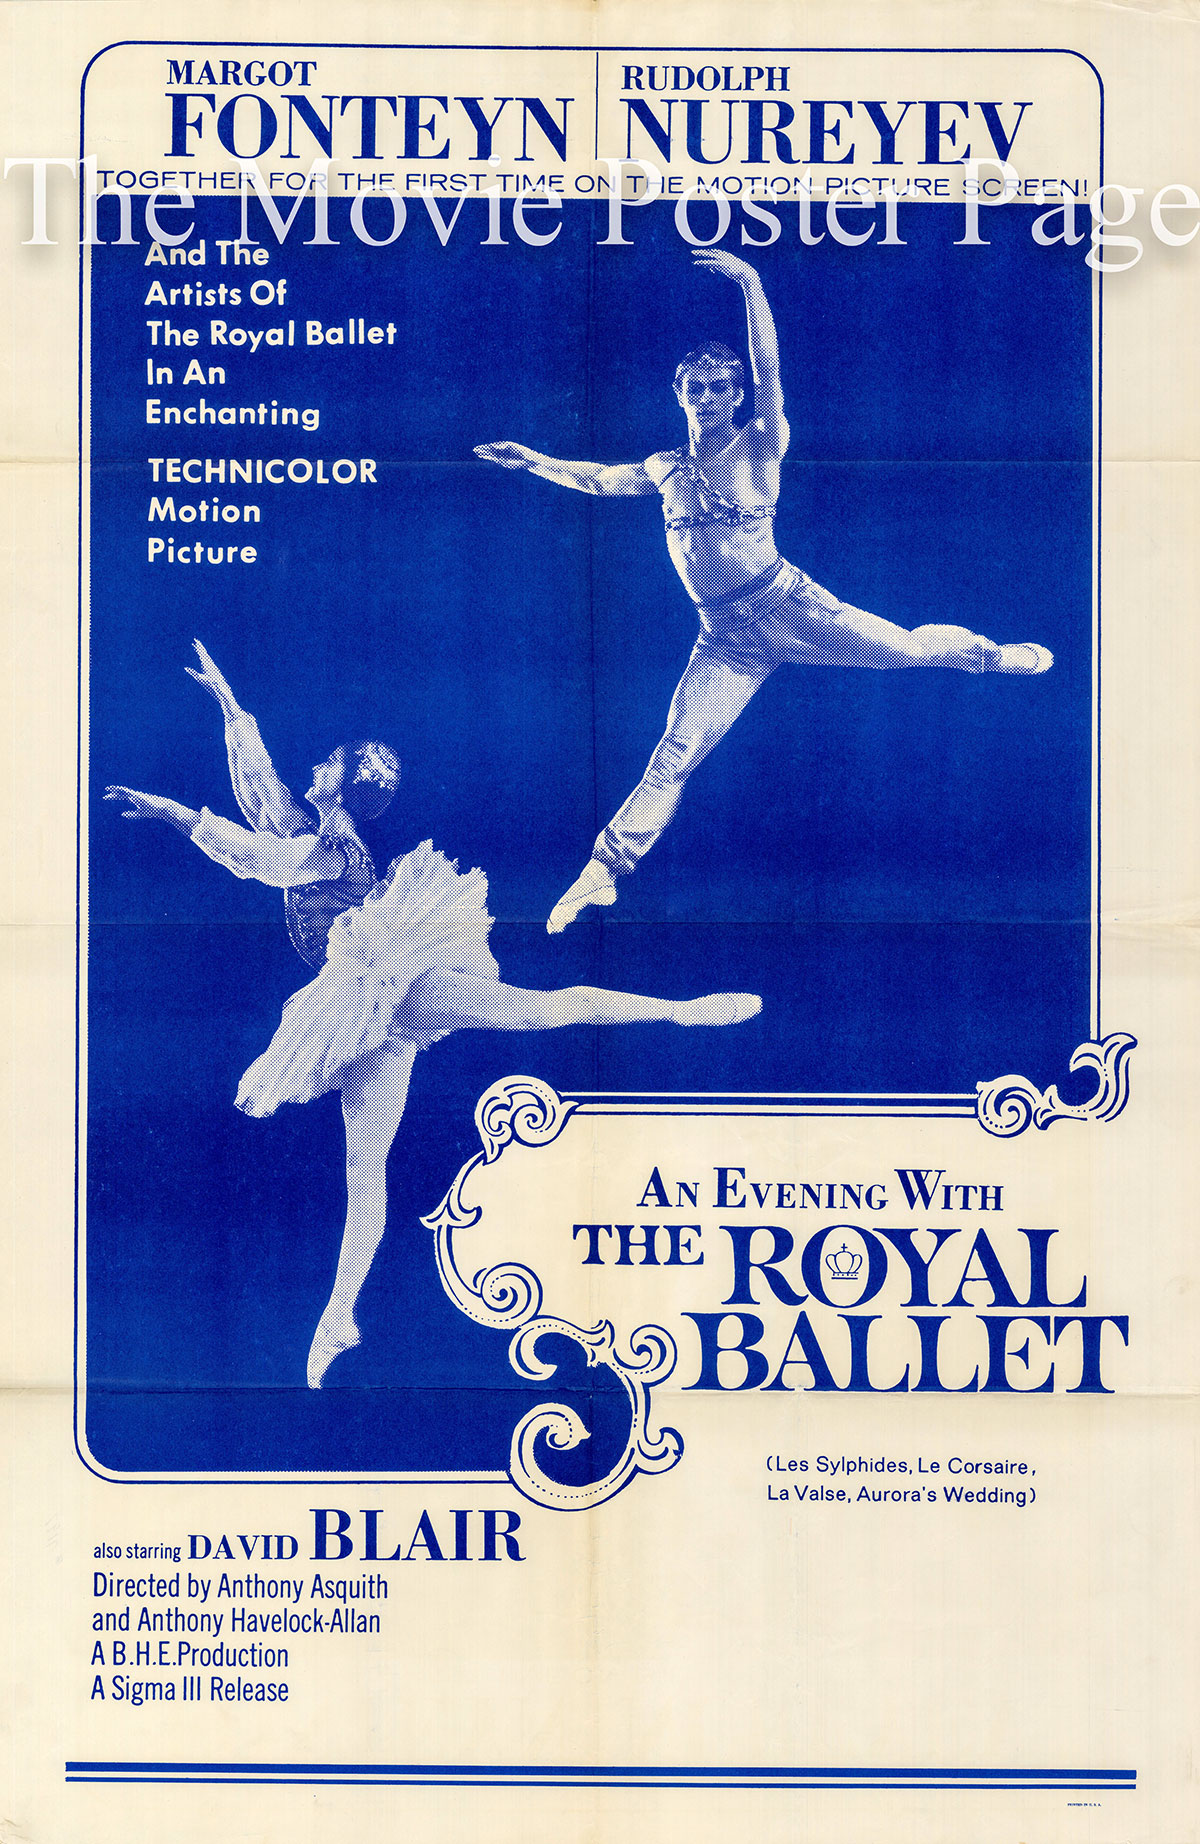 Pictured is a US one-sheet promotional poster for the 1963 Anthony Asquith and Anthony Havelock-Allan film An Evening with the Royal Ballet starring Morgot Fonteyn and Rudolf and Nureyev.